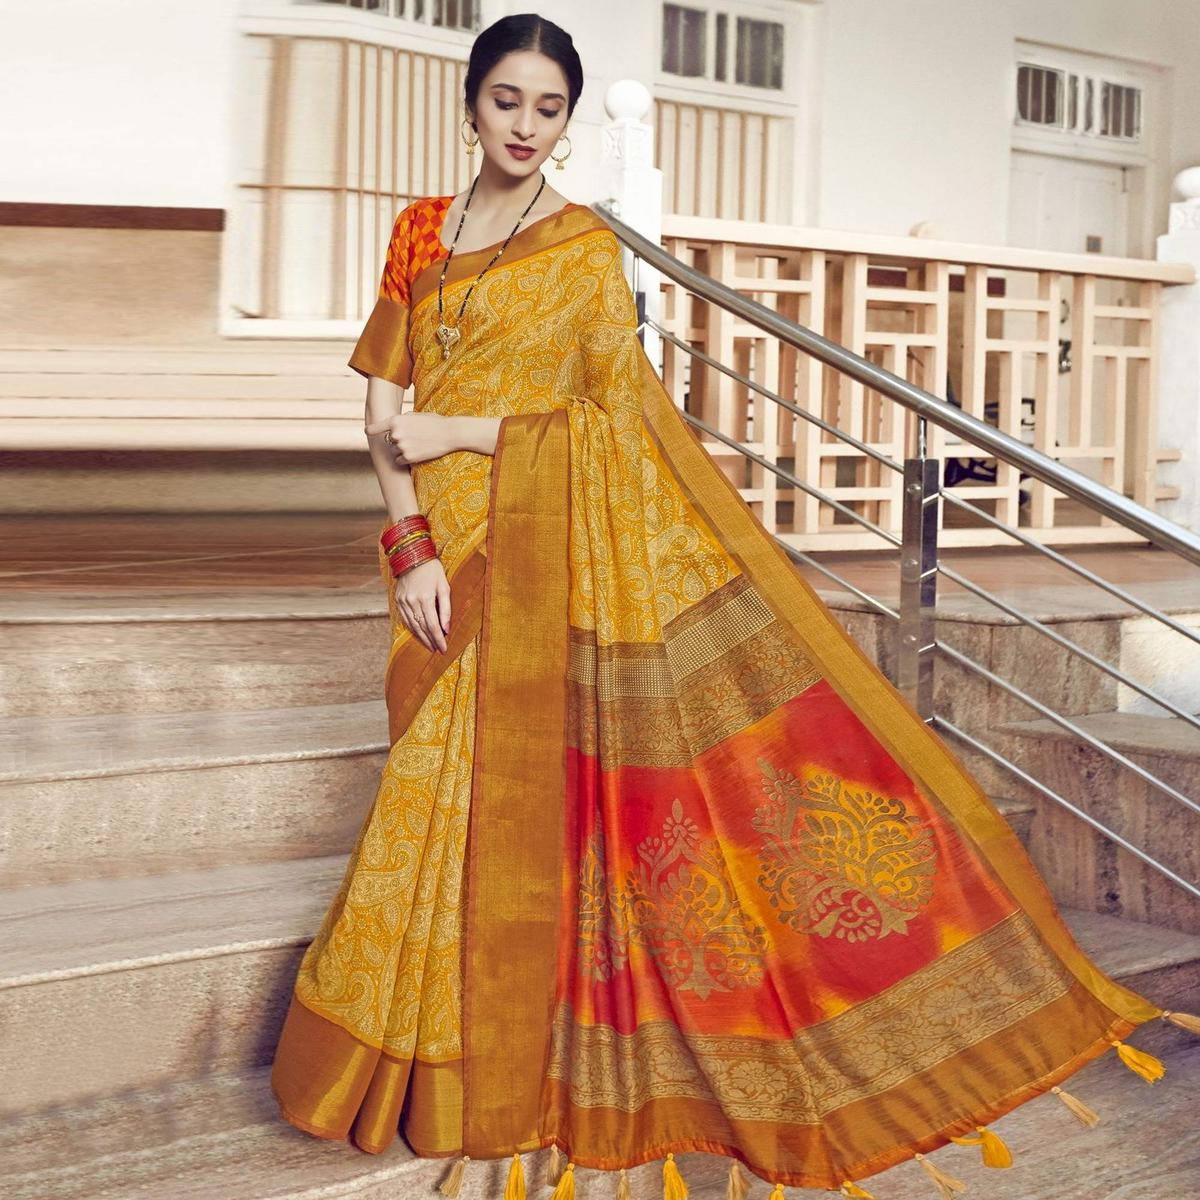 Triveni Yellow Colored Cotton Linen Printed Saree With Blouse Piece